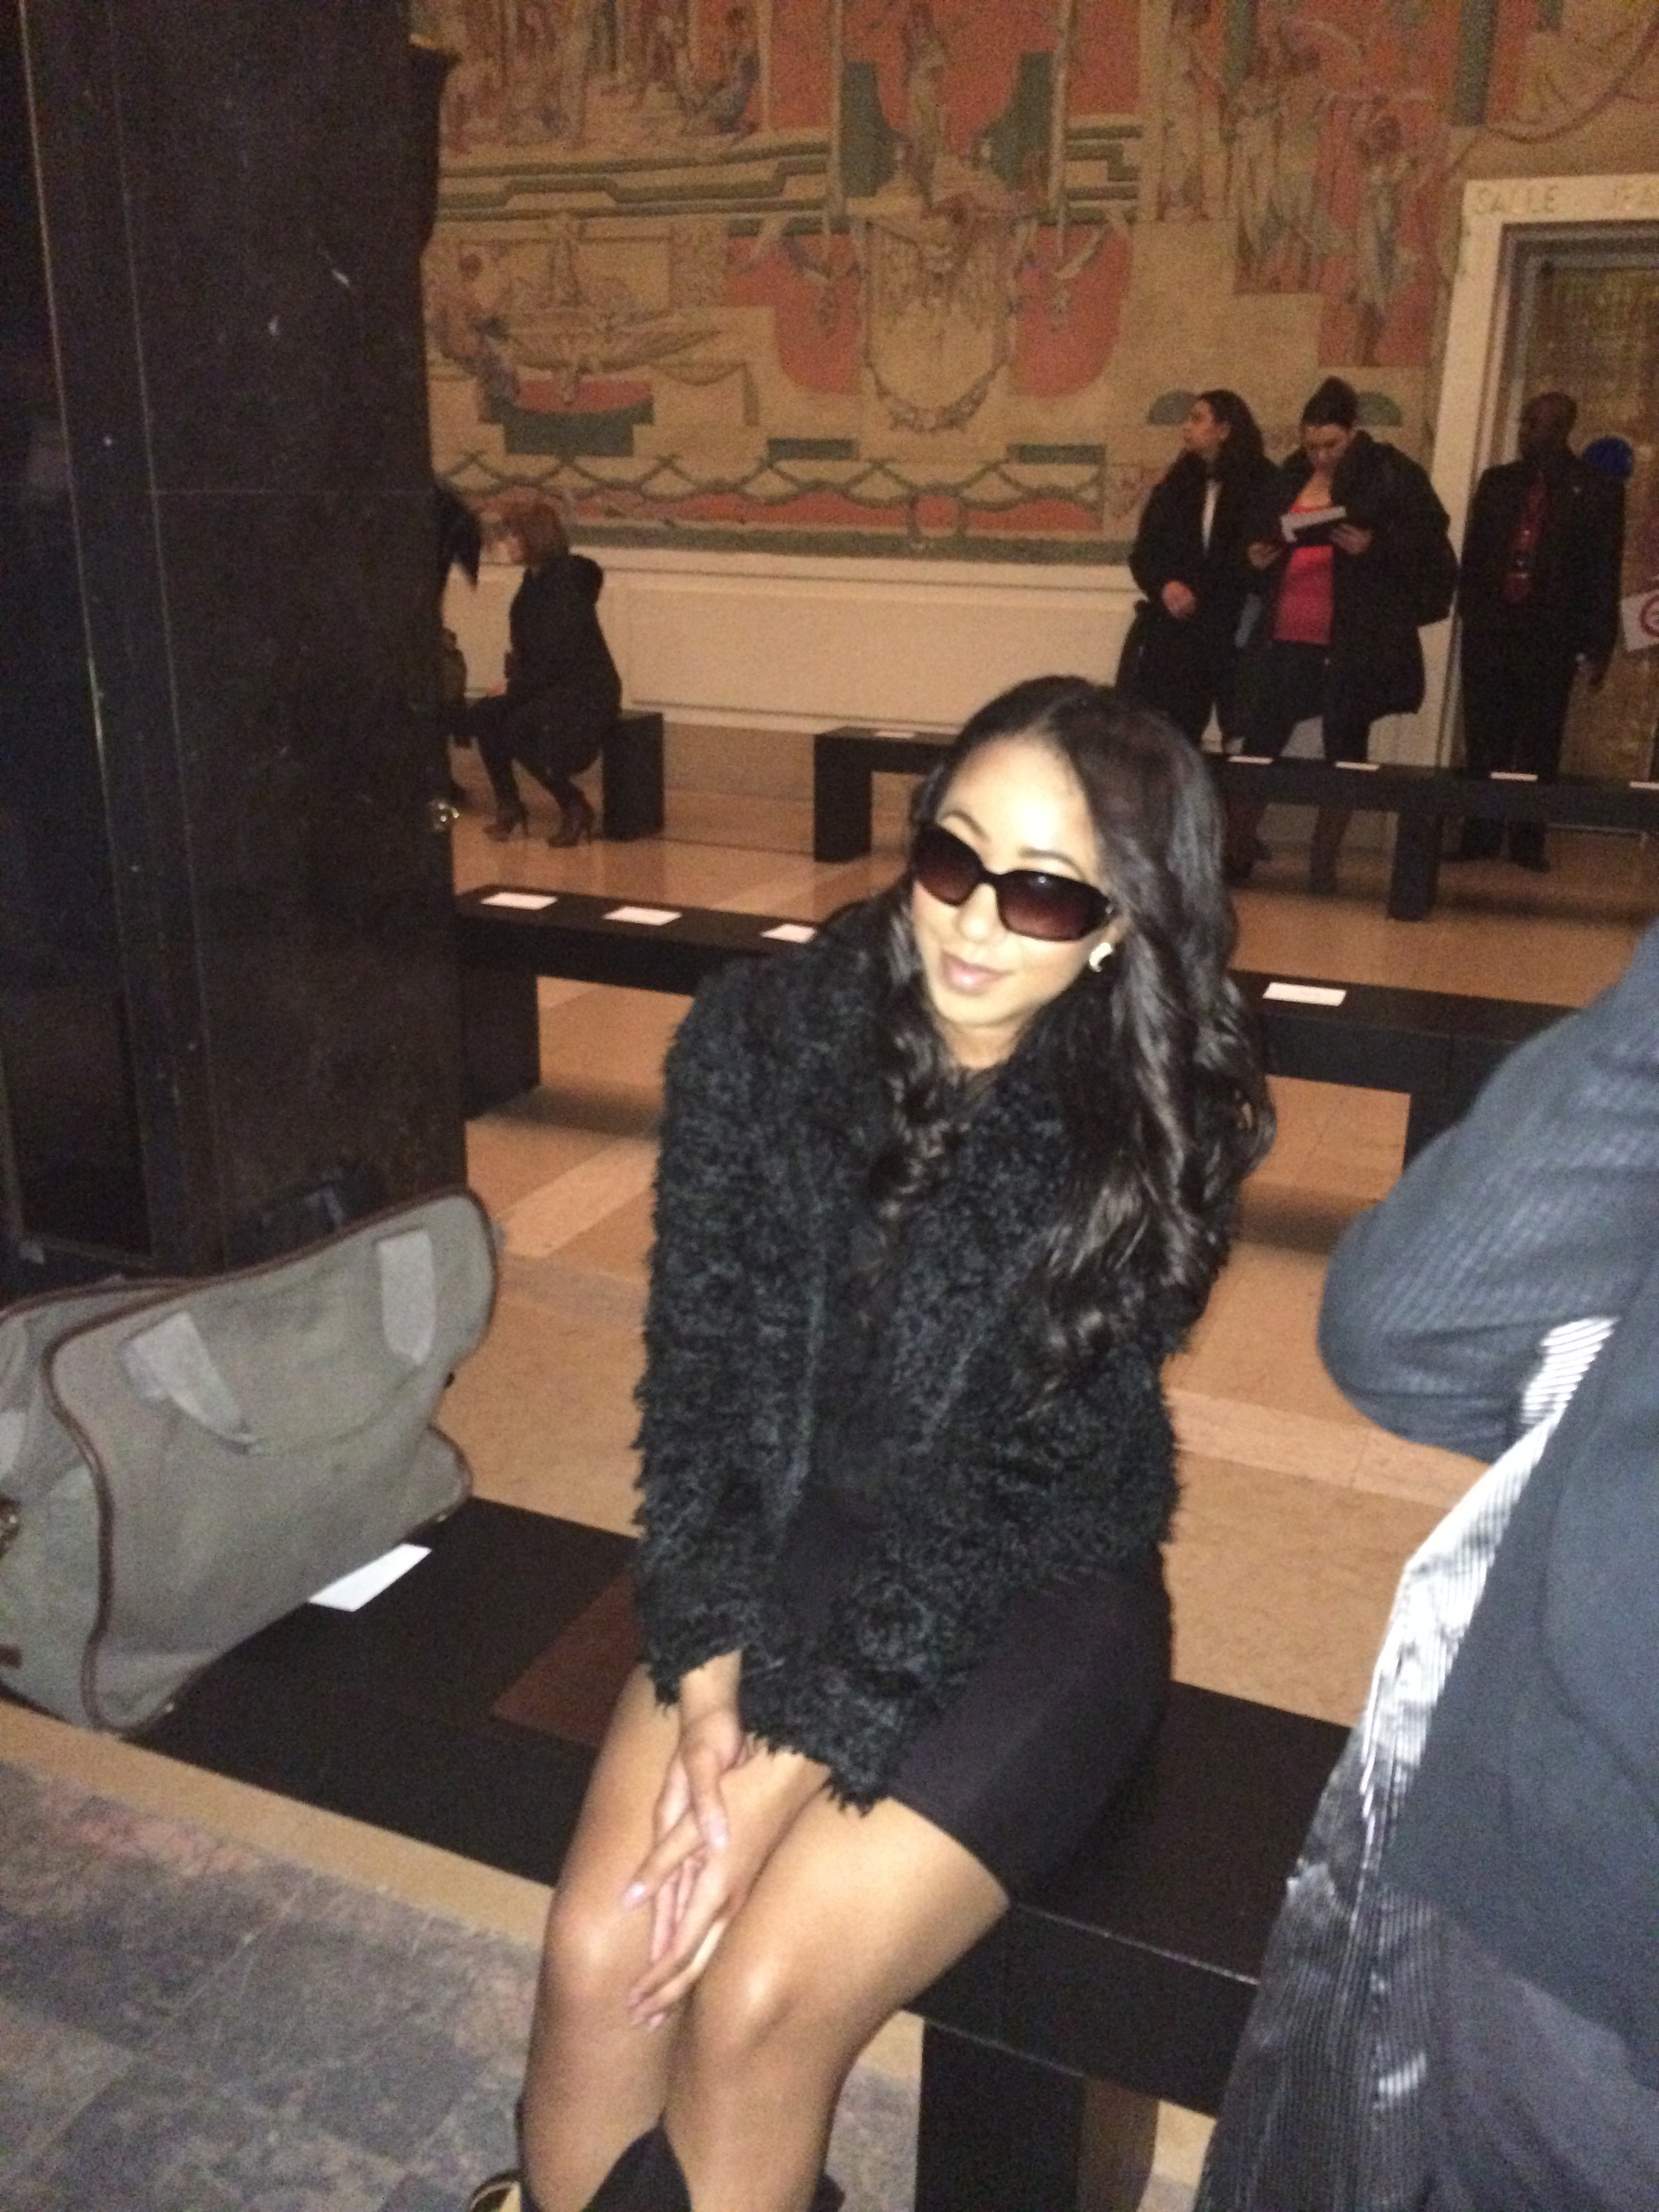 Waiting for the Paris Fashion Week Show to start